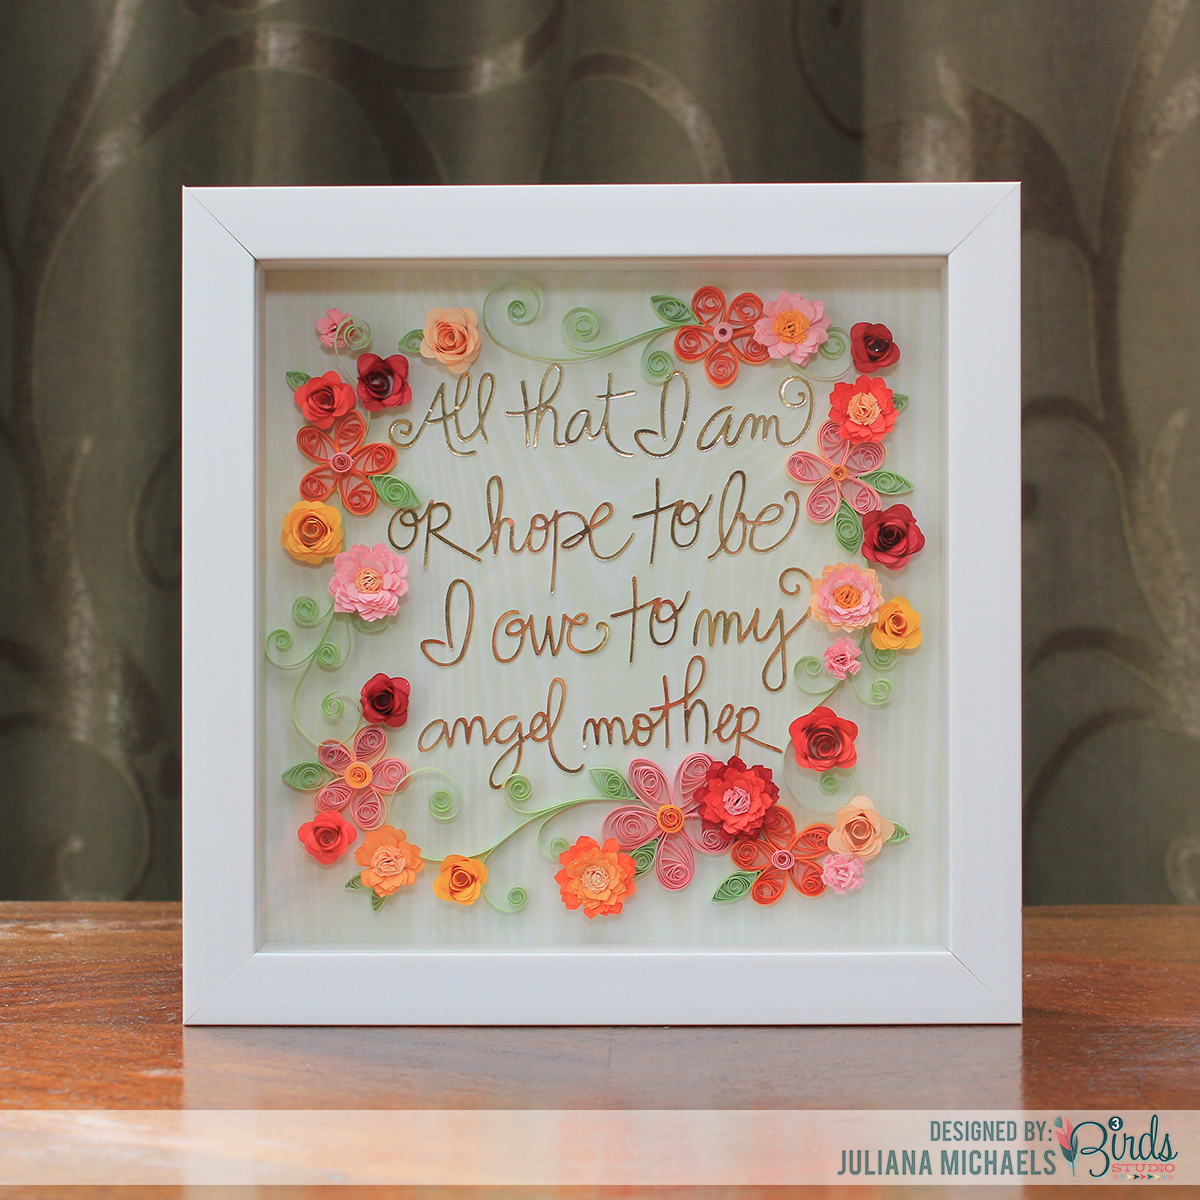 Quilled Mother's Day Gift Frame by Juliana Michaels featuring 3 Birds Design